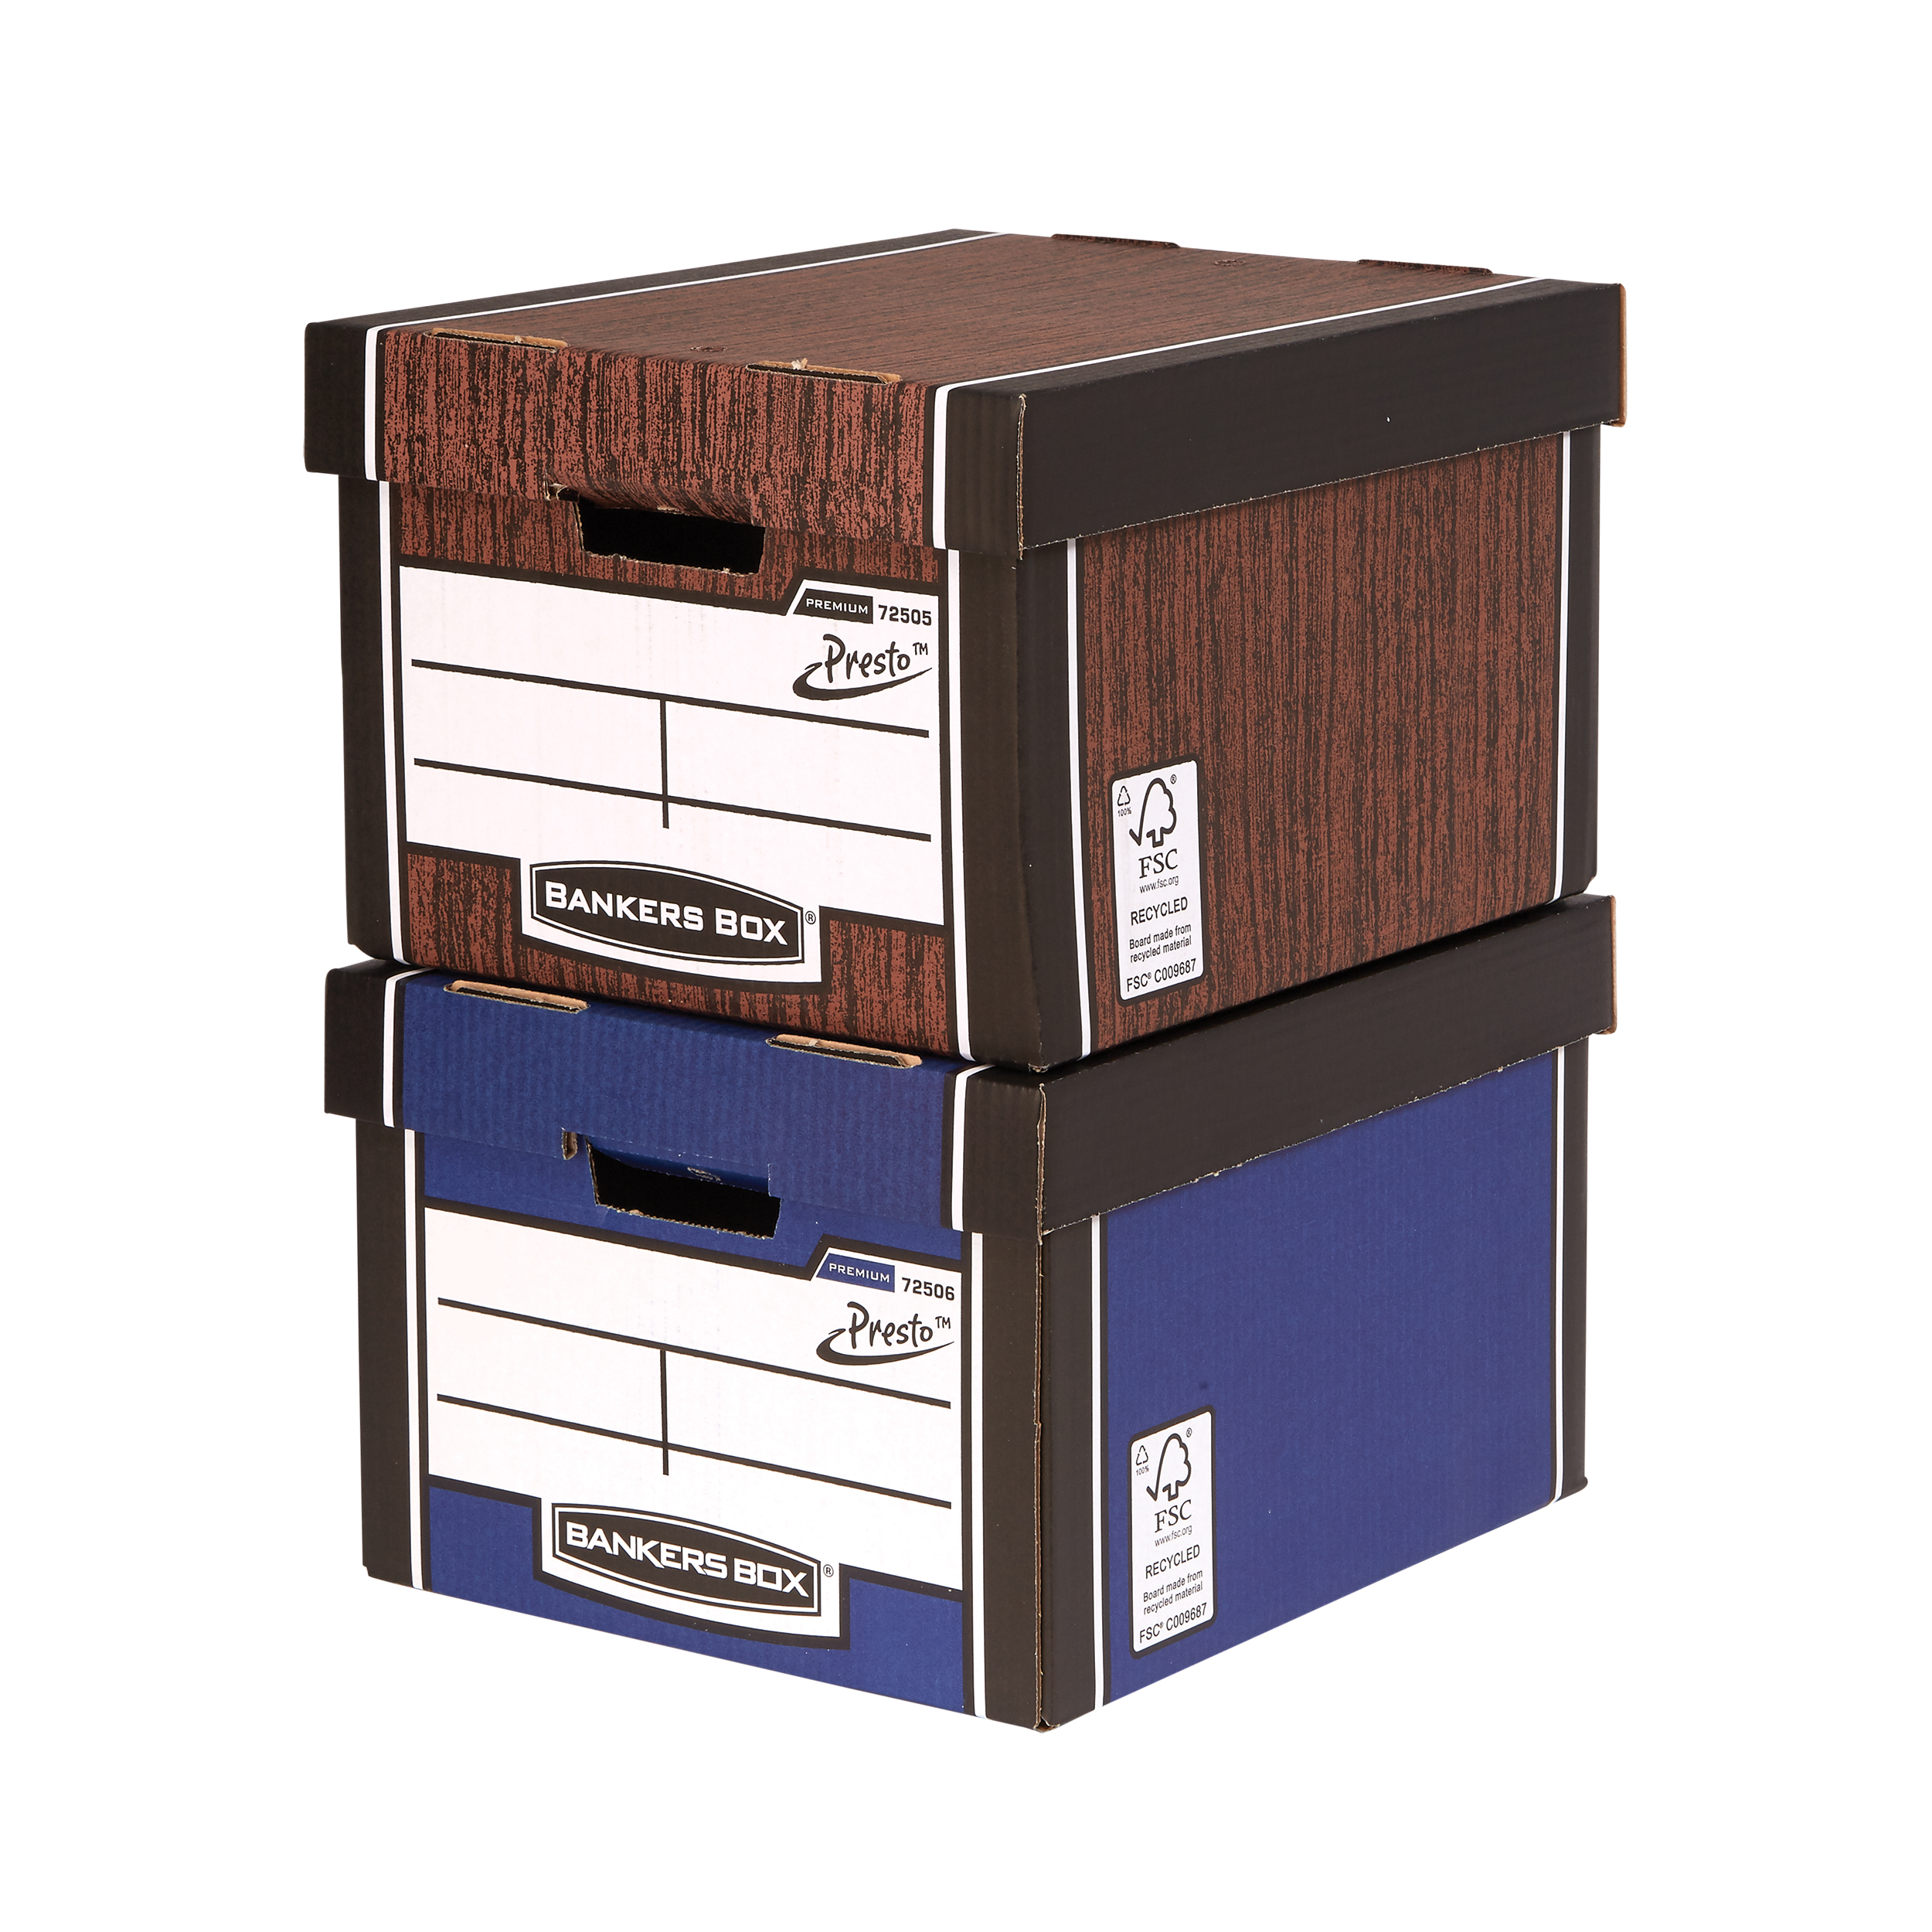 Storage Boxes Bankers Box Premium Storage Box Presto Classic Blue FSC Ref7250603 Pack 12 12 for the price of 10